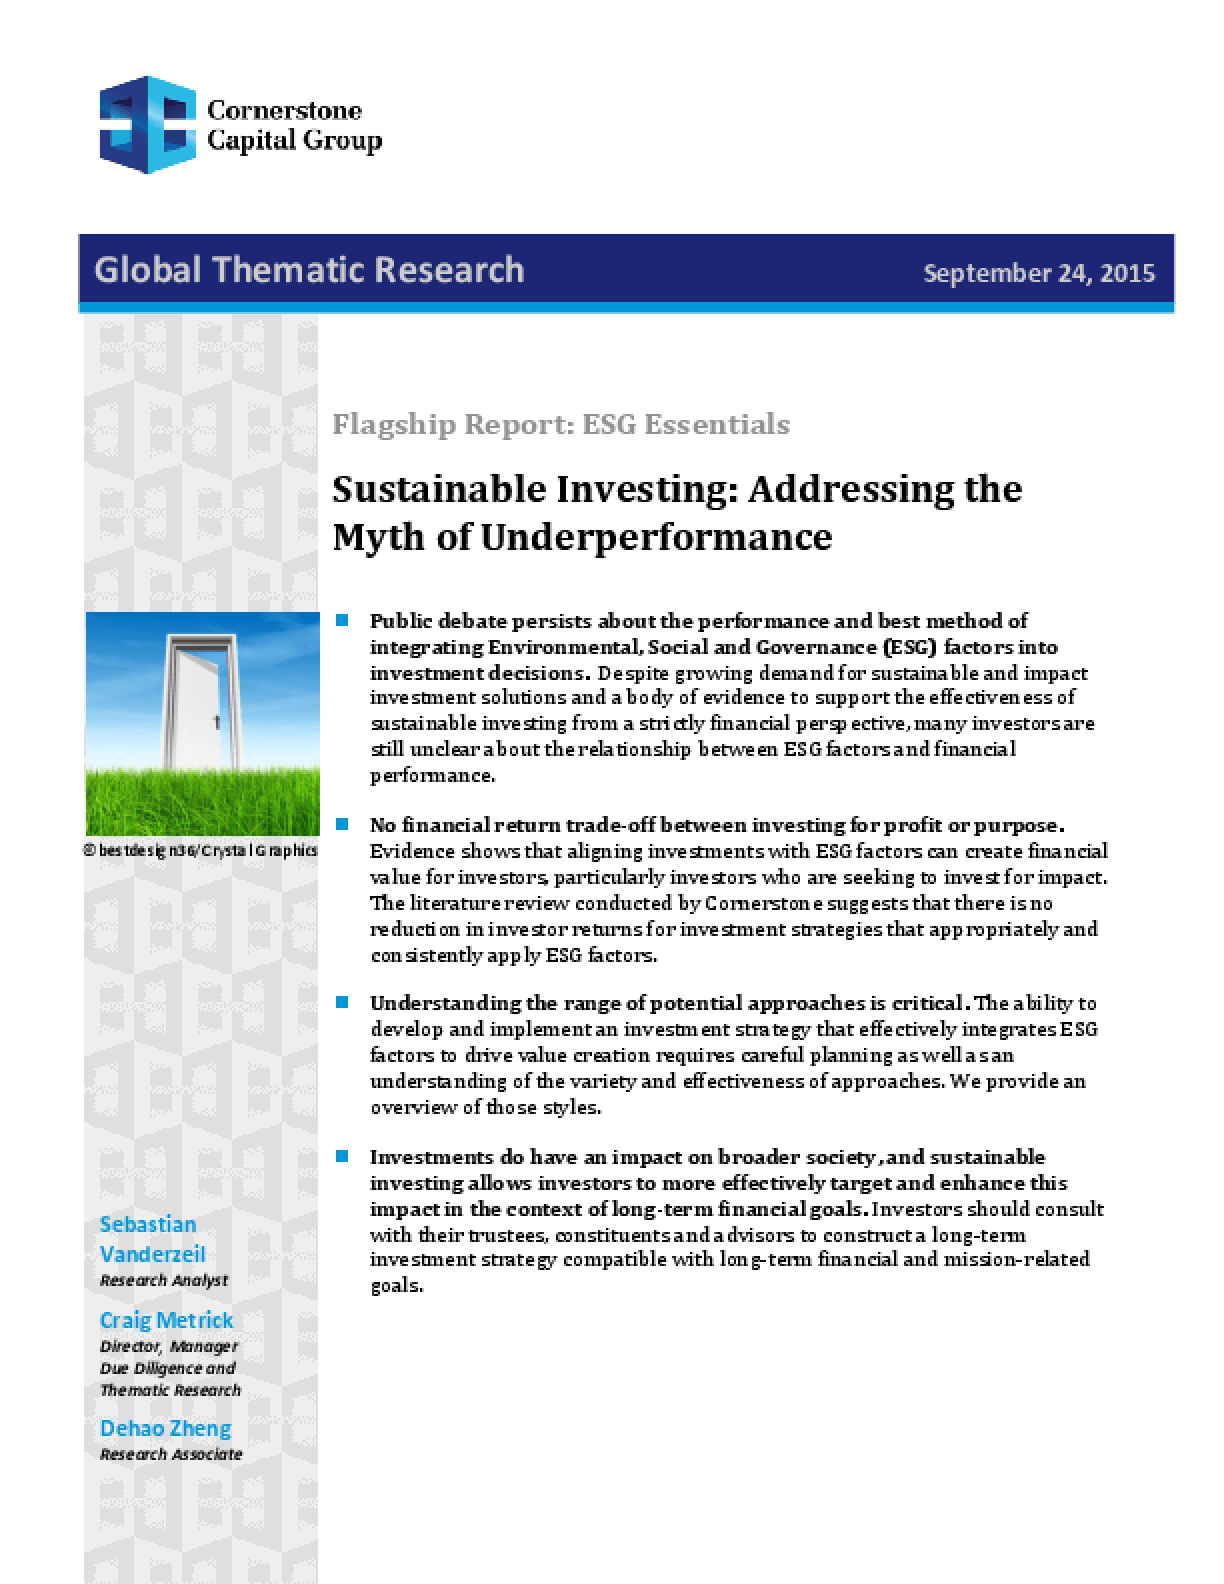 Myths about responsible investing persist among investors and advisors forecasting